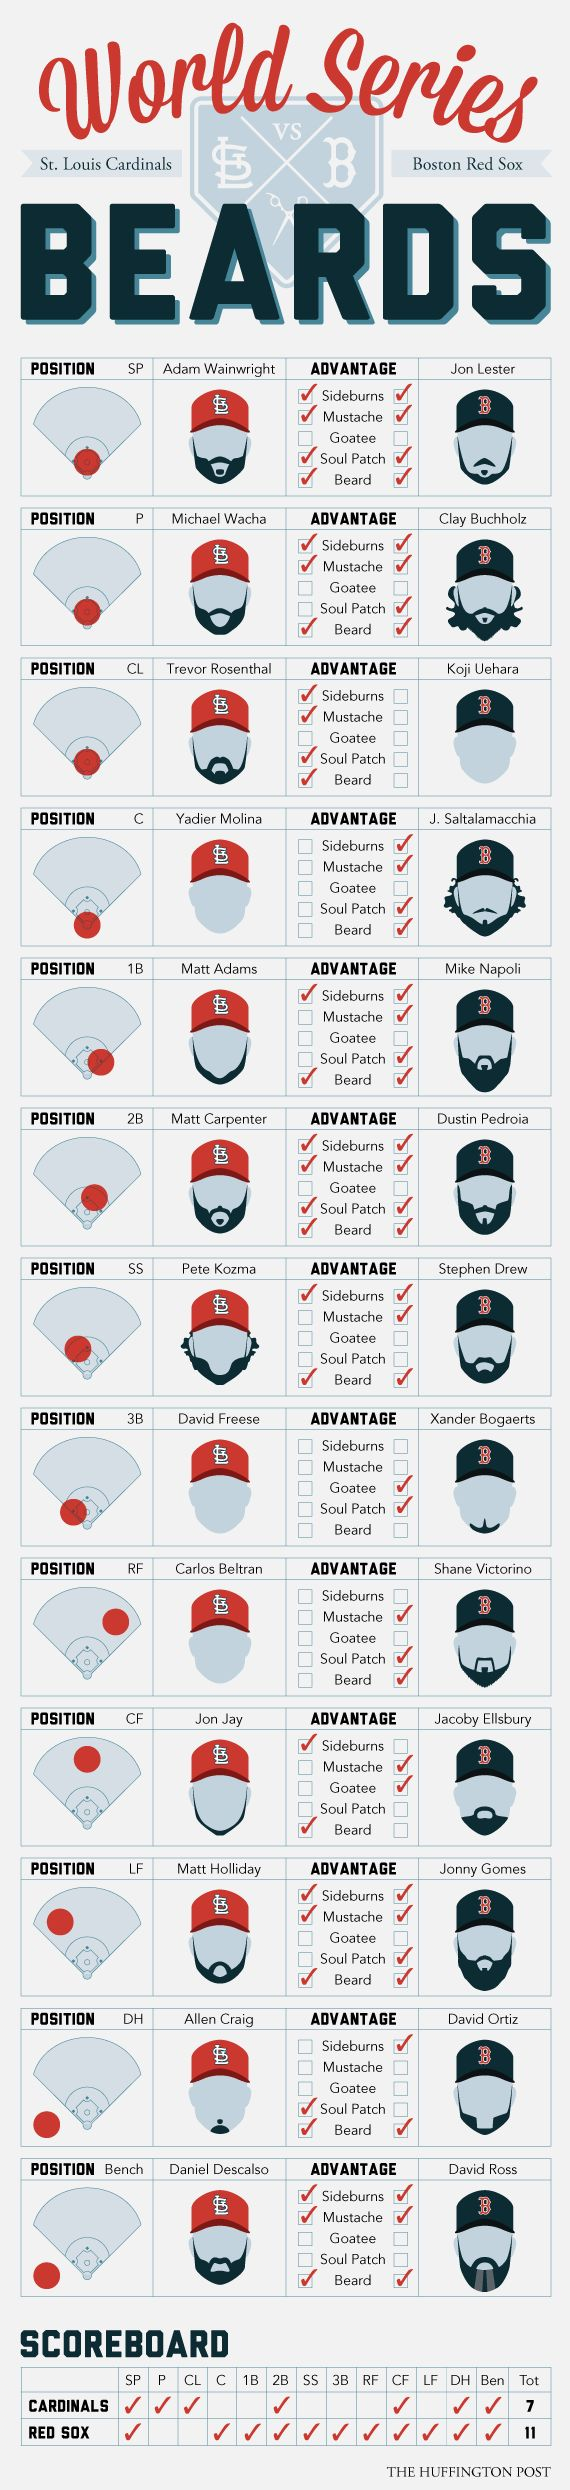 [Infographic] World Series Beards